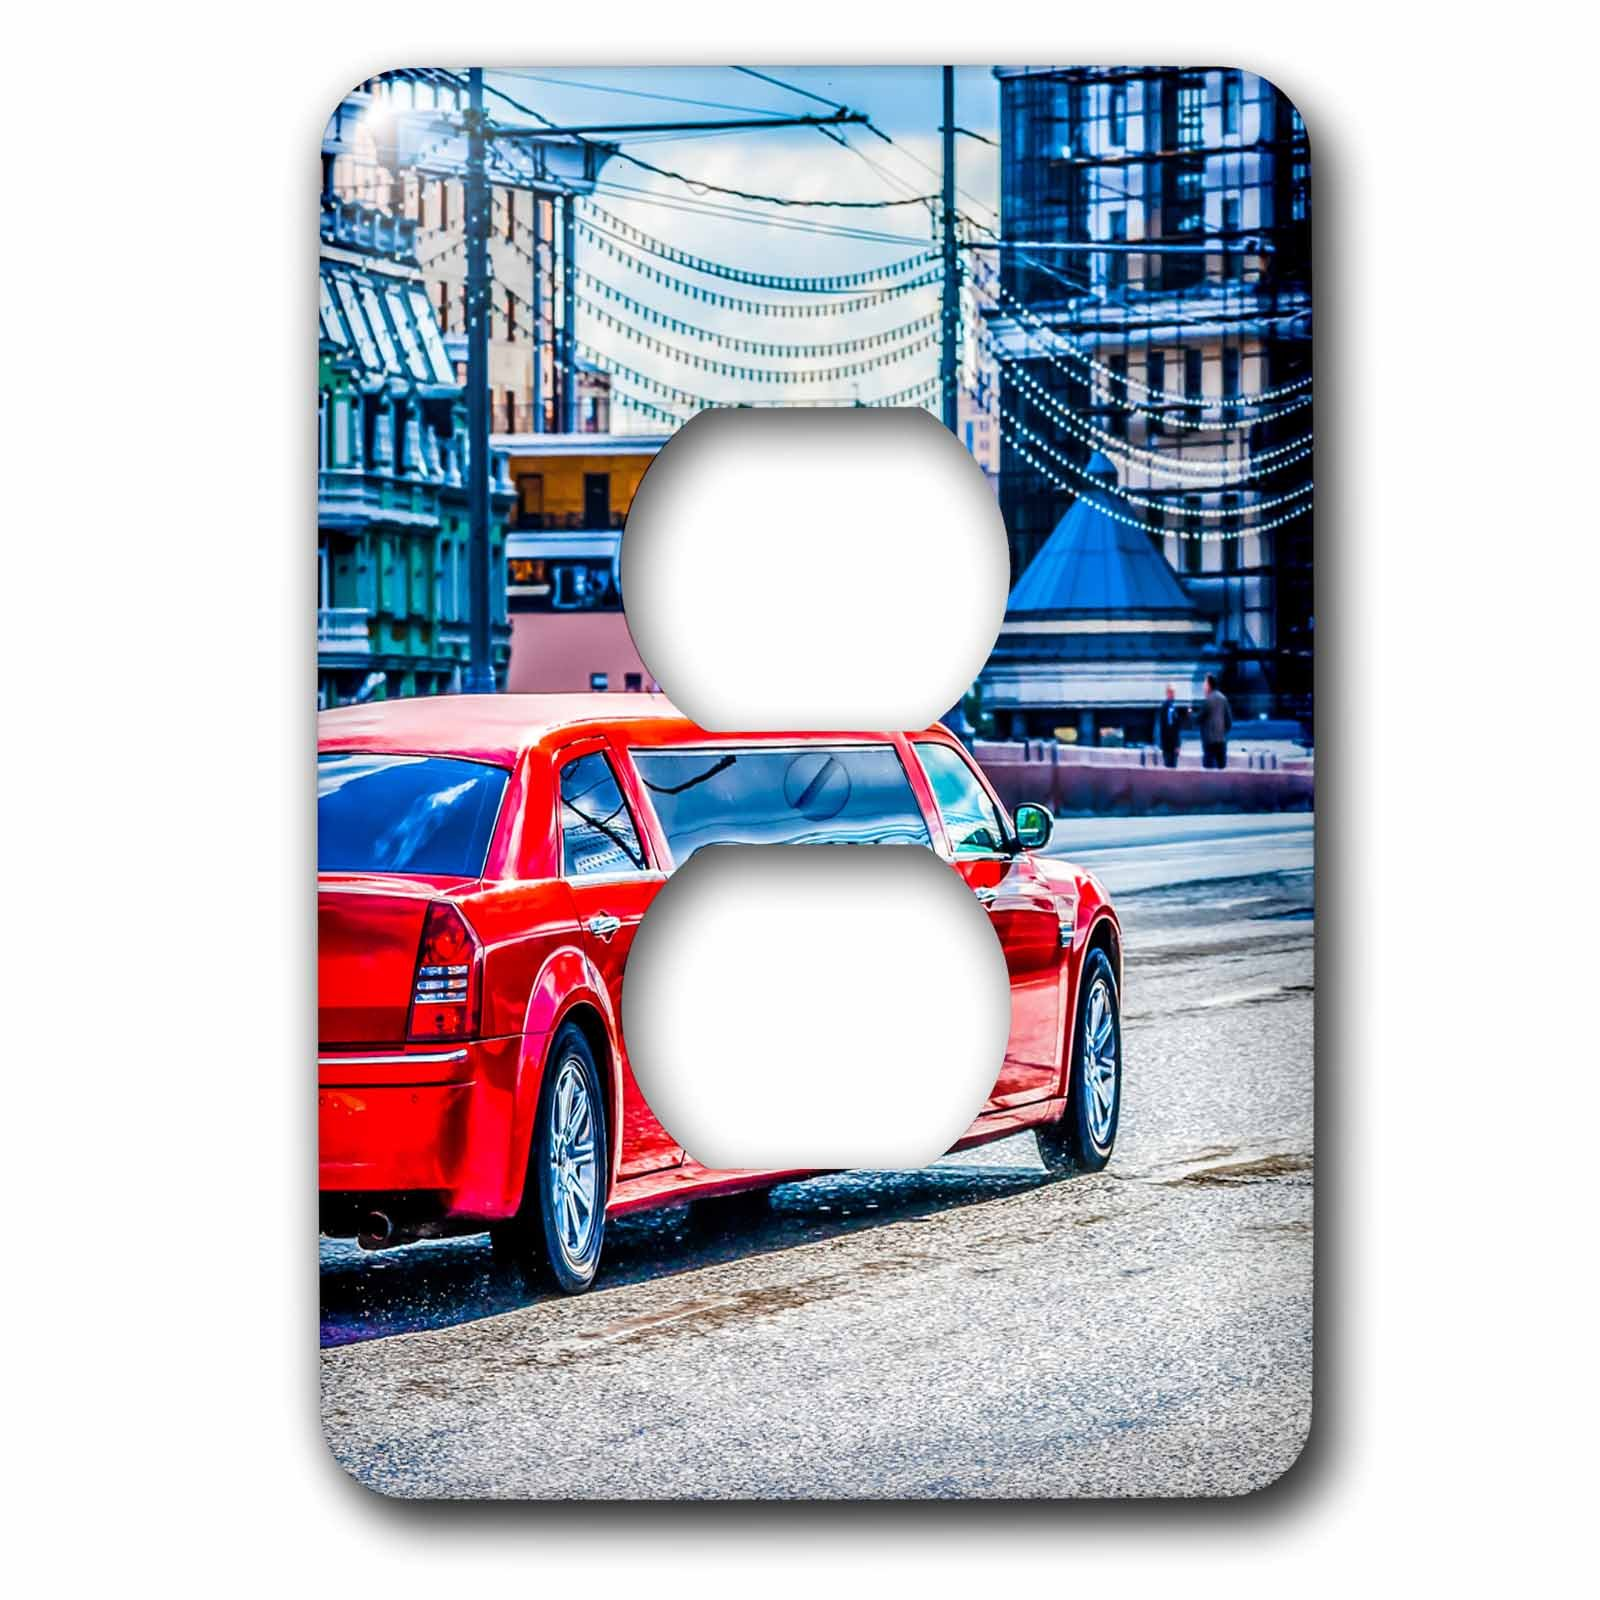 3dRose Alexis Photography - Transport Road - Luxury red limousine car drives along the street - Light Switch Covers - 2 plug outlet cover (lsp_271309_6) by 3dRose (Image #1)